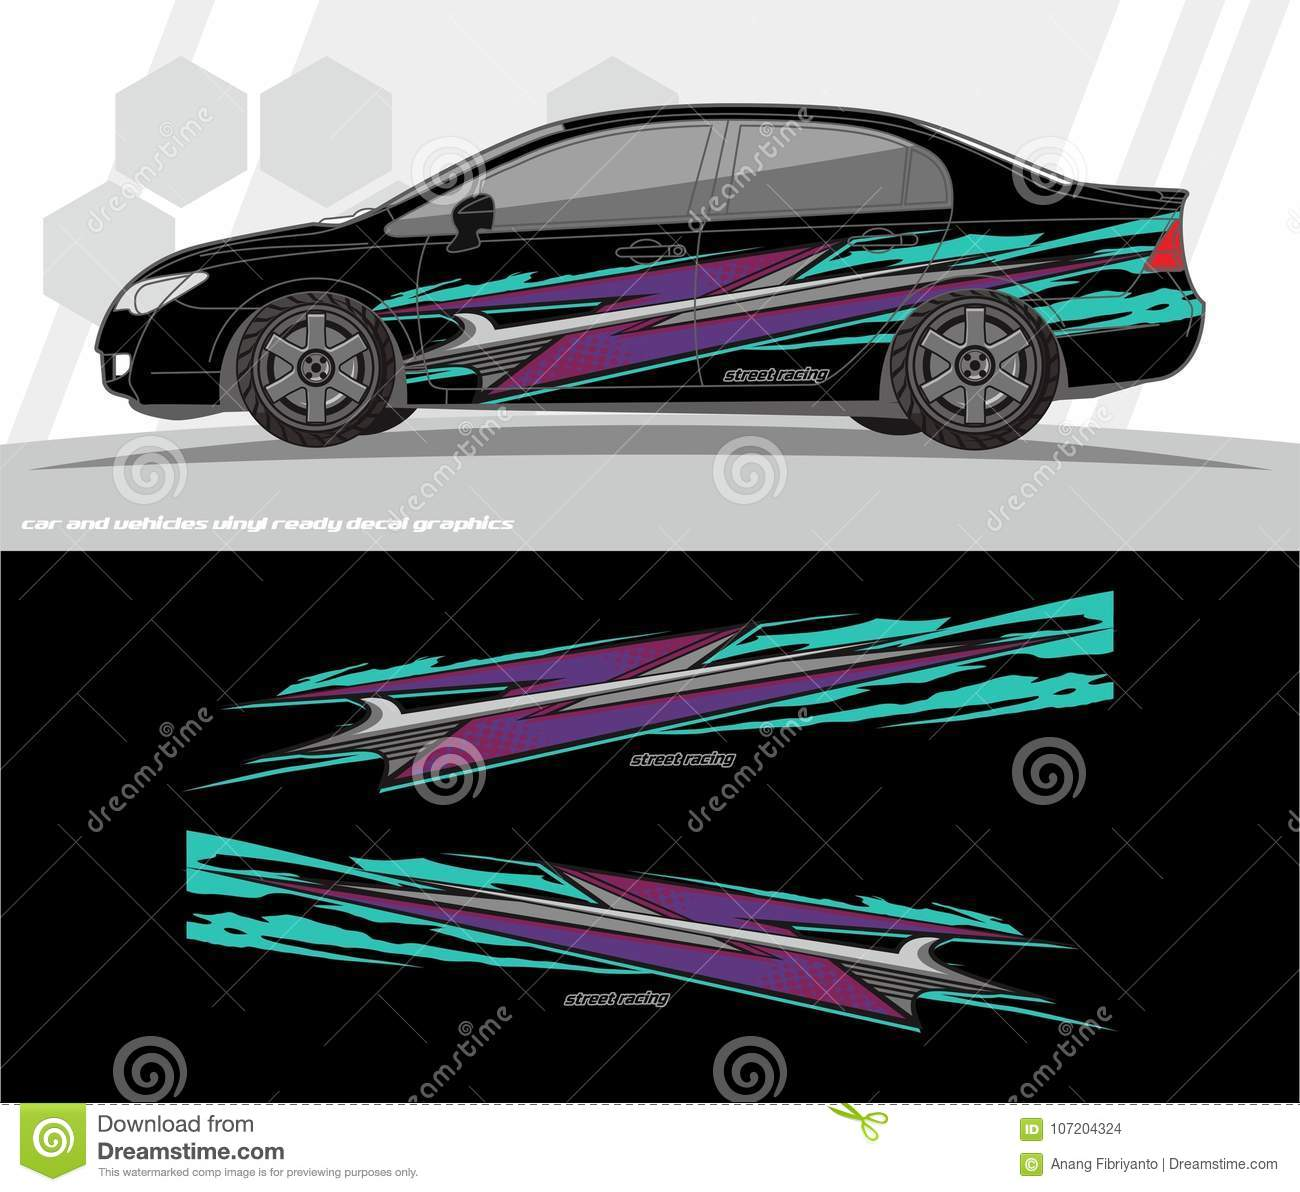 Car And Vehicles Wrap Decal Graphics Kit Designs Ready To Print And